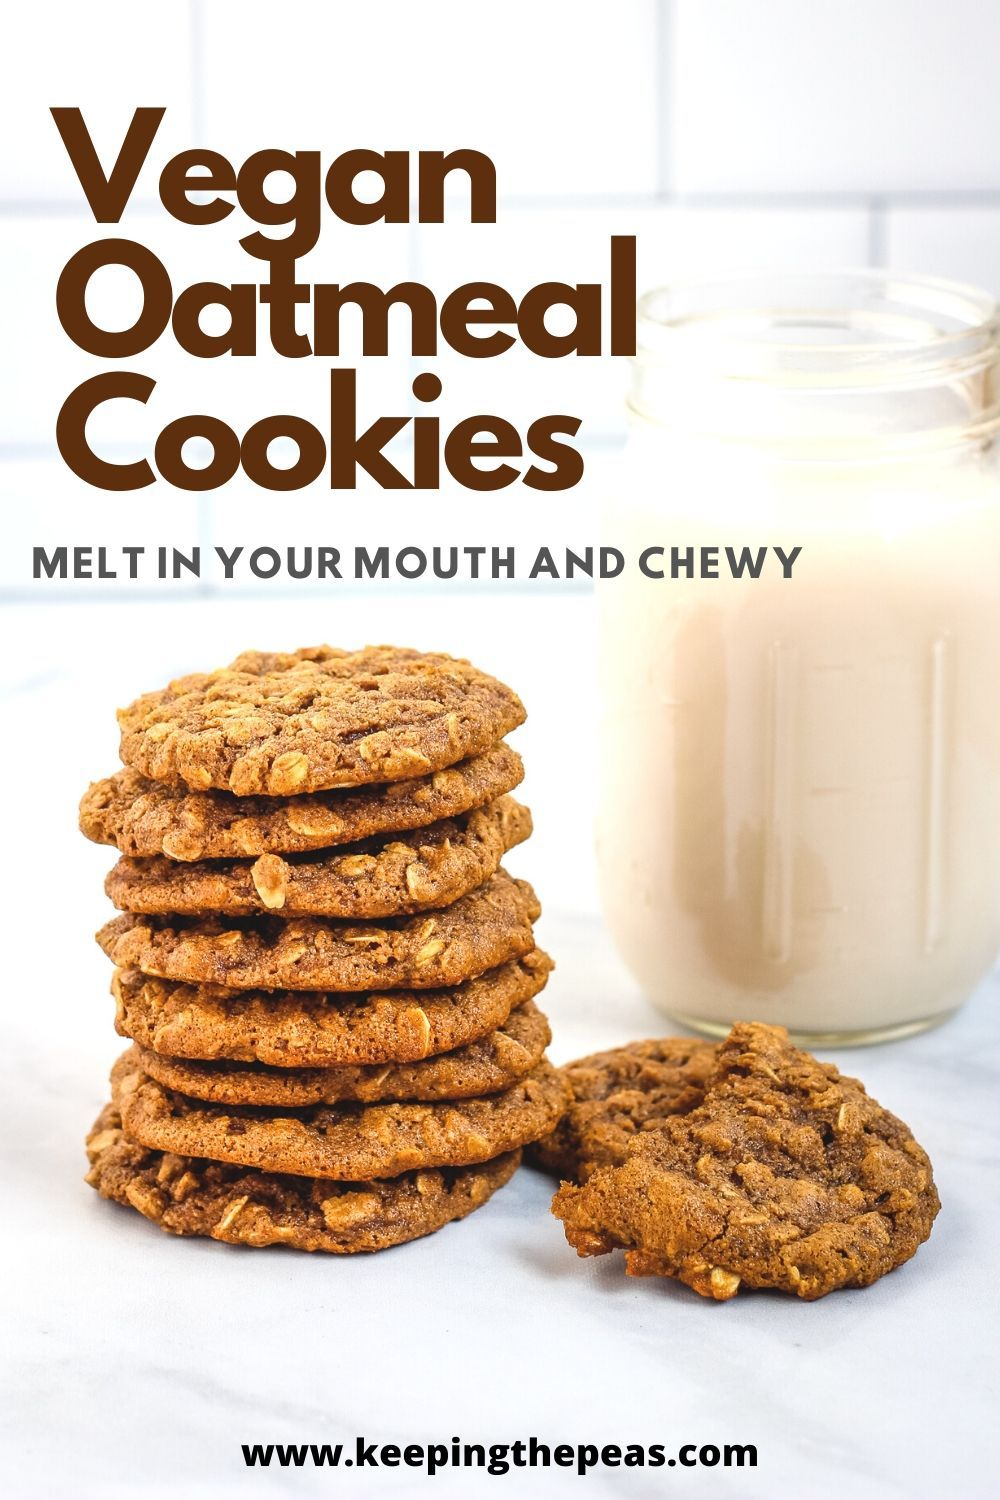 These Vegan Oatmeal Cookies Are Soft And Chewy They Re Dairy Free Oil Free And Egg Free Made With Whole Food Plant Based In 2020 Vegan Oatmeal Cookies Vegan Oatmeal